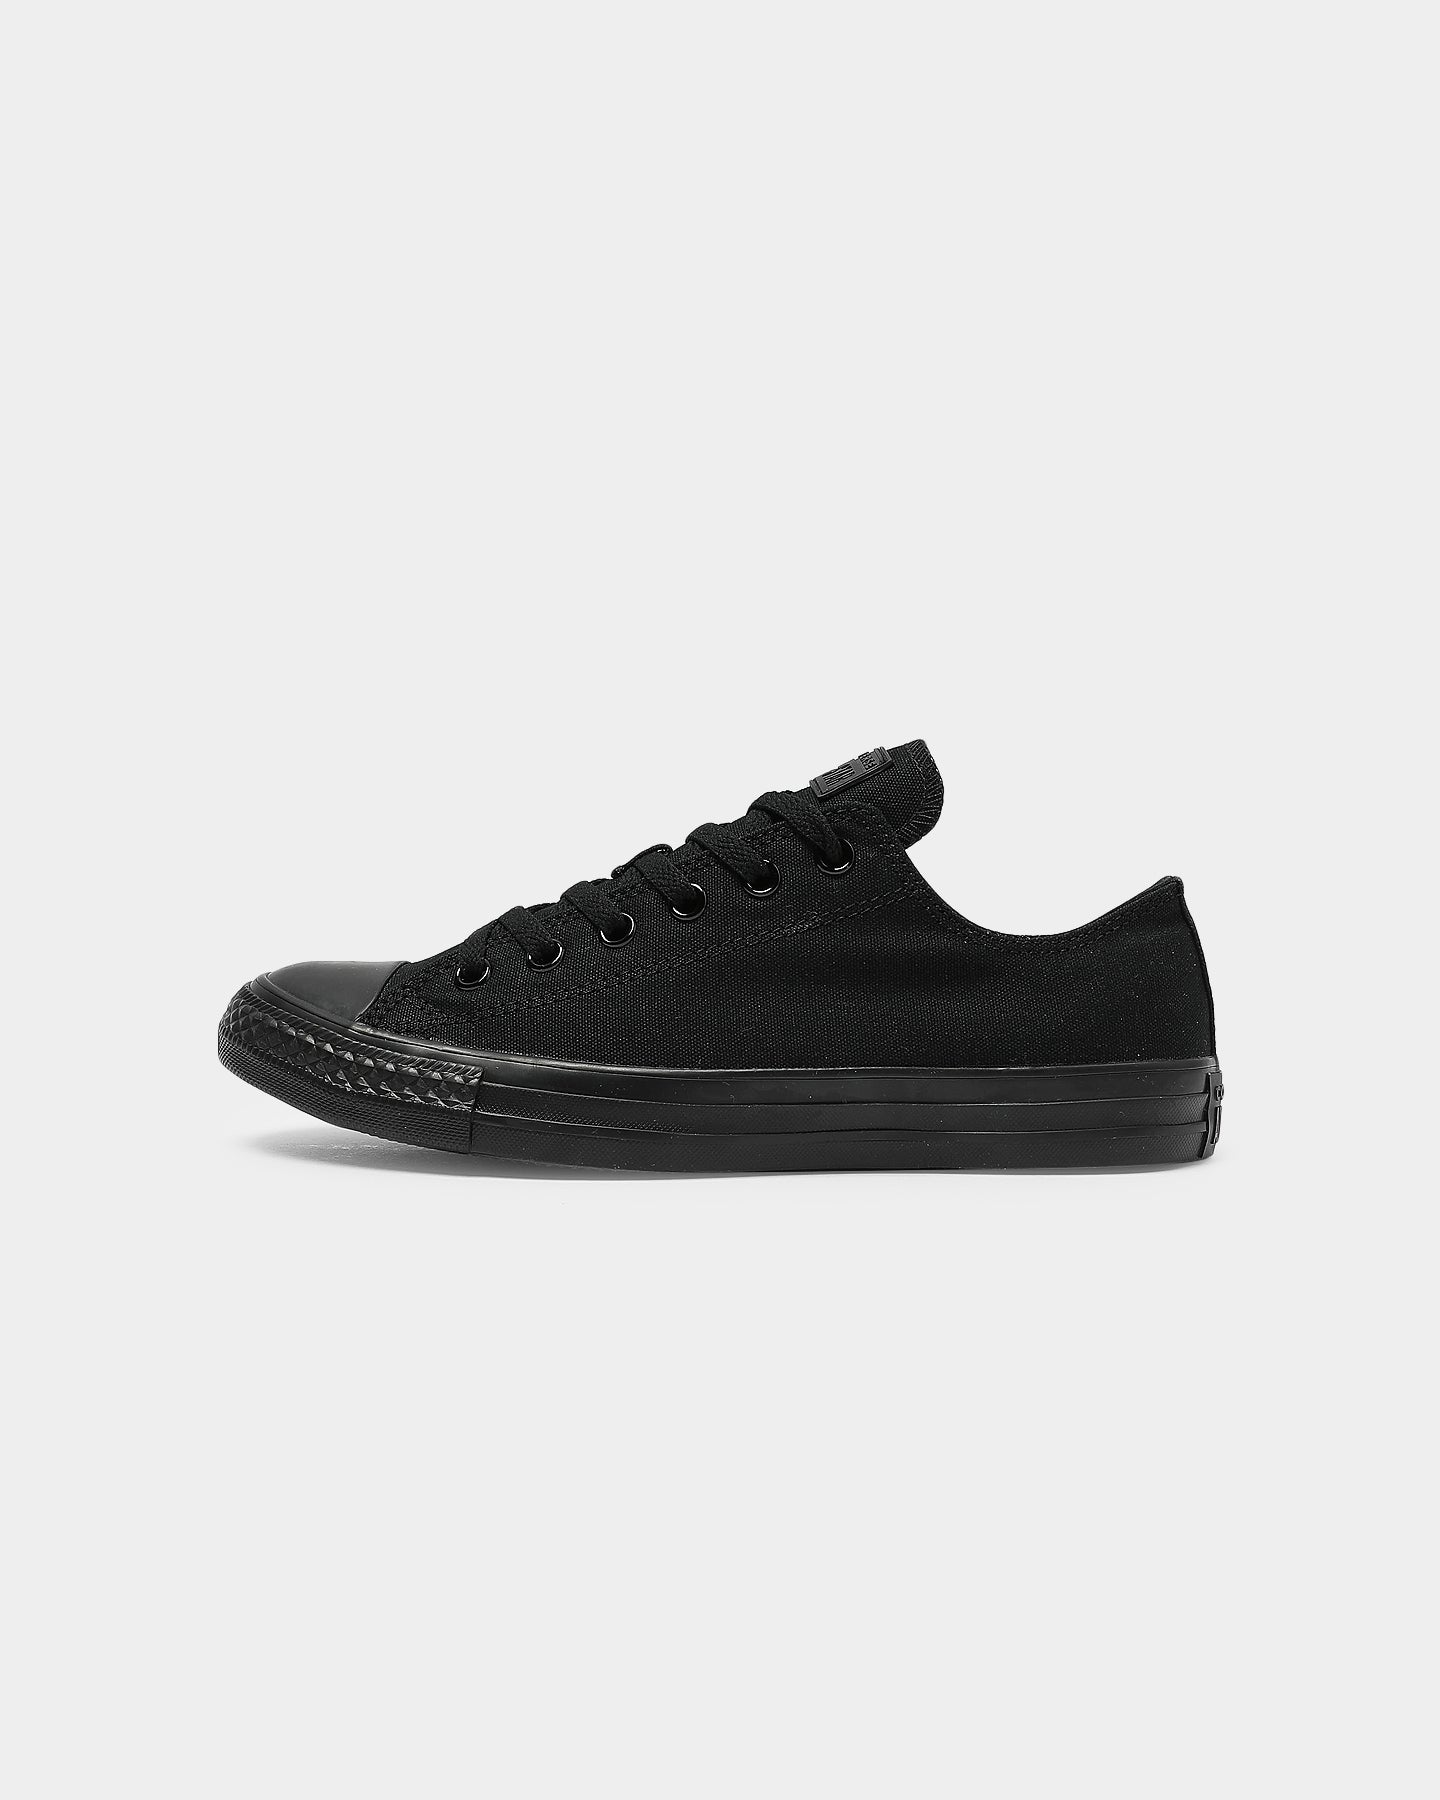 WK Black Converse Chuck Taylor All Star High Tops | SNEAKERS | The Wiz Vault